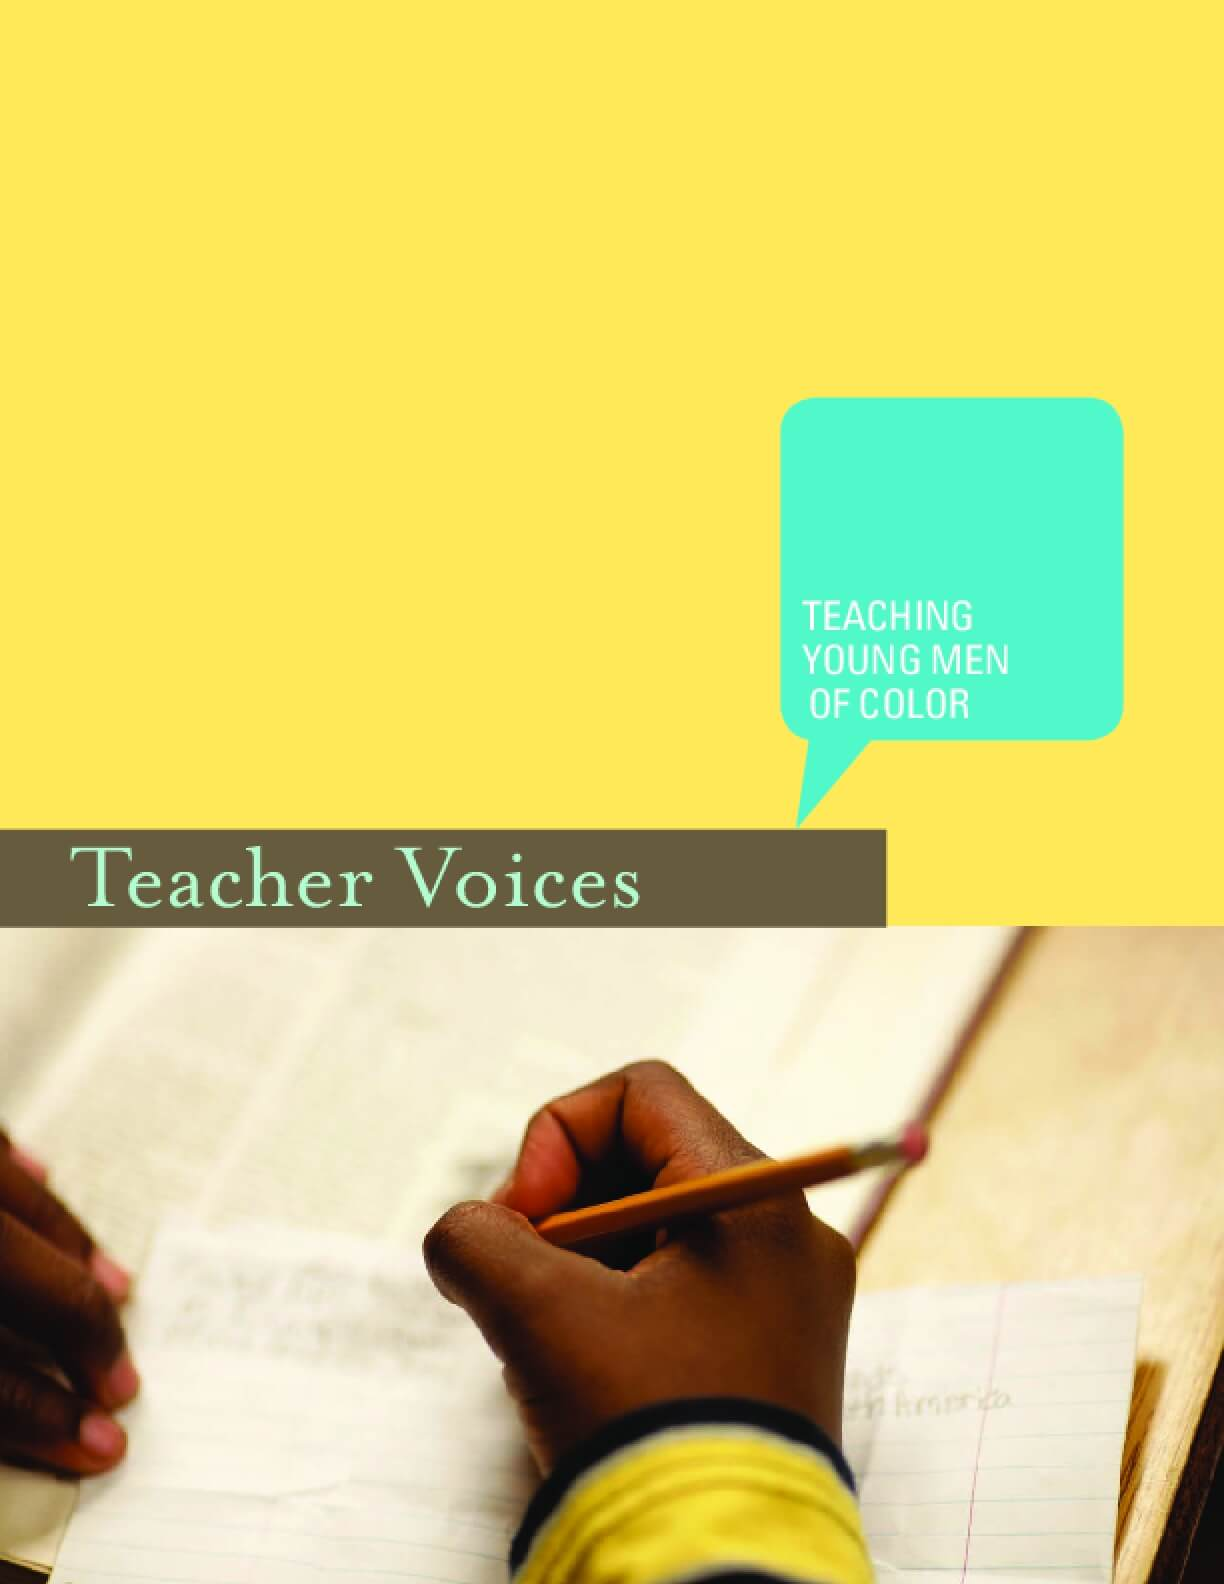 Teacher Voices: Teaching Young Men of Color